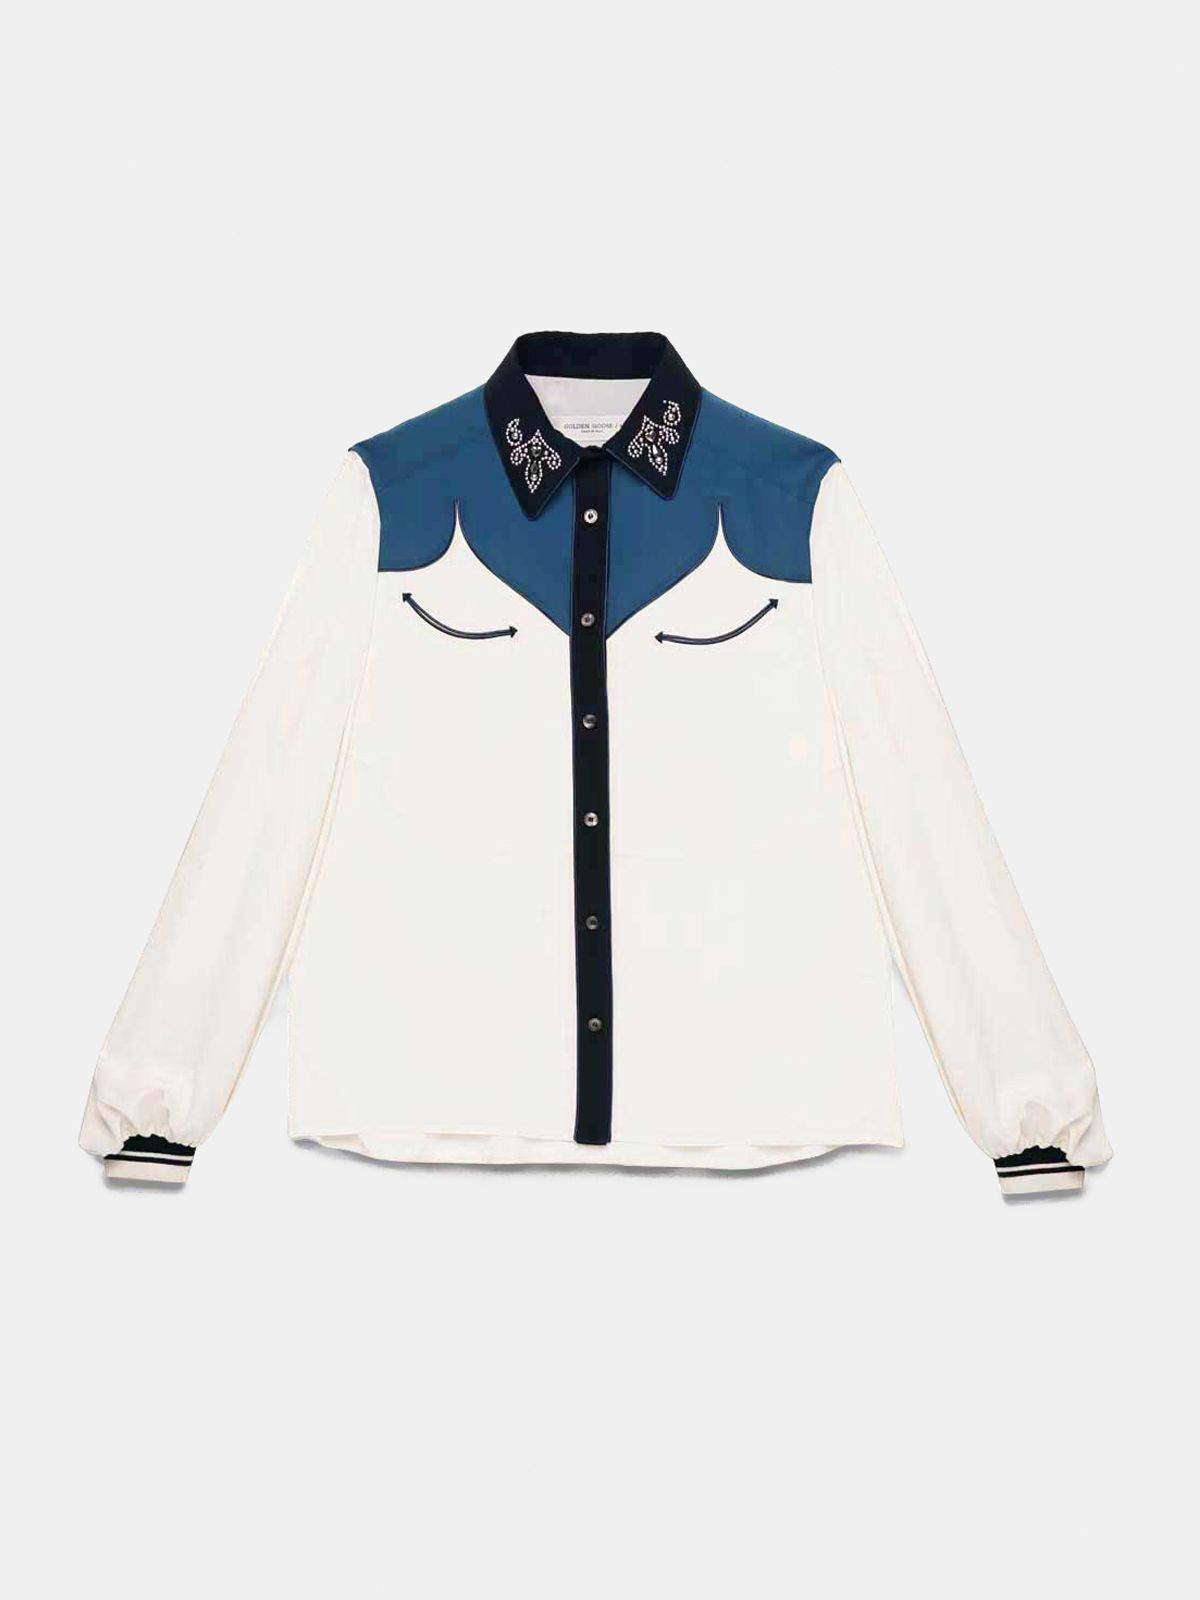 Golden Goose - Two-tone Madelyn silk shirt with studs on collar in